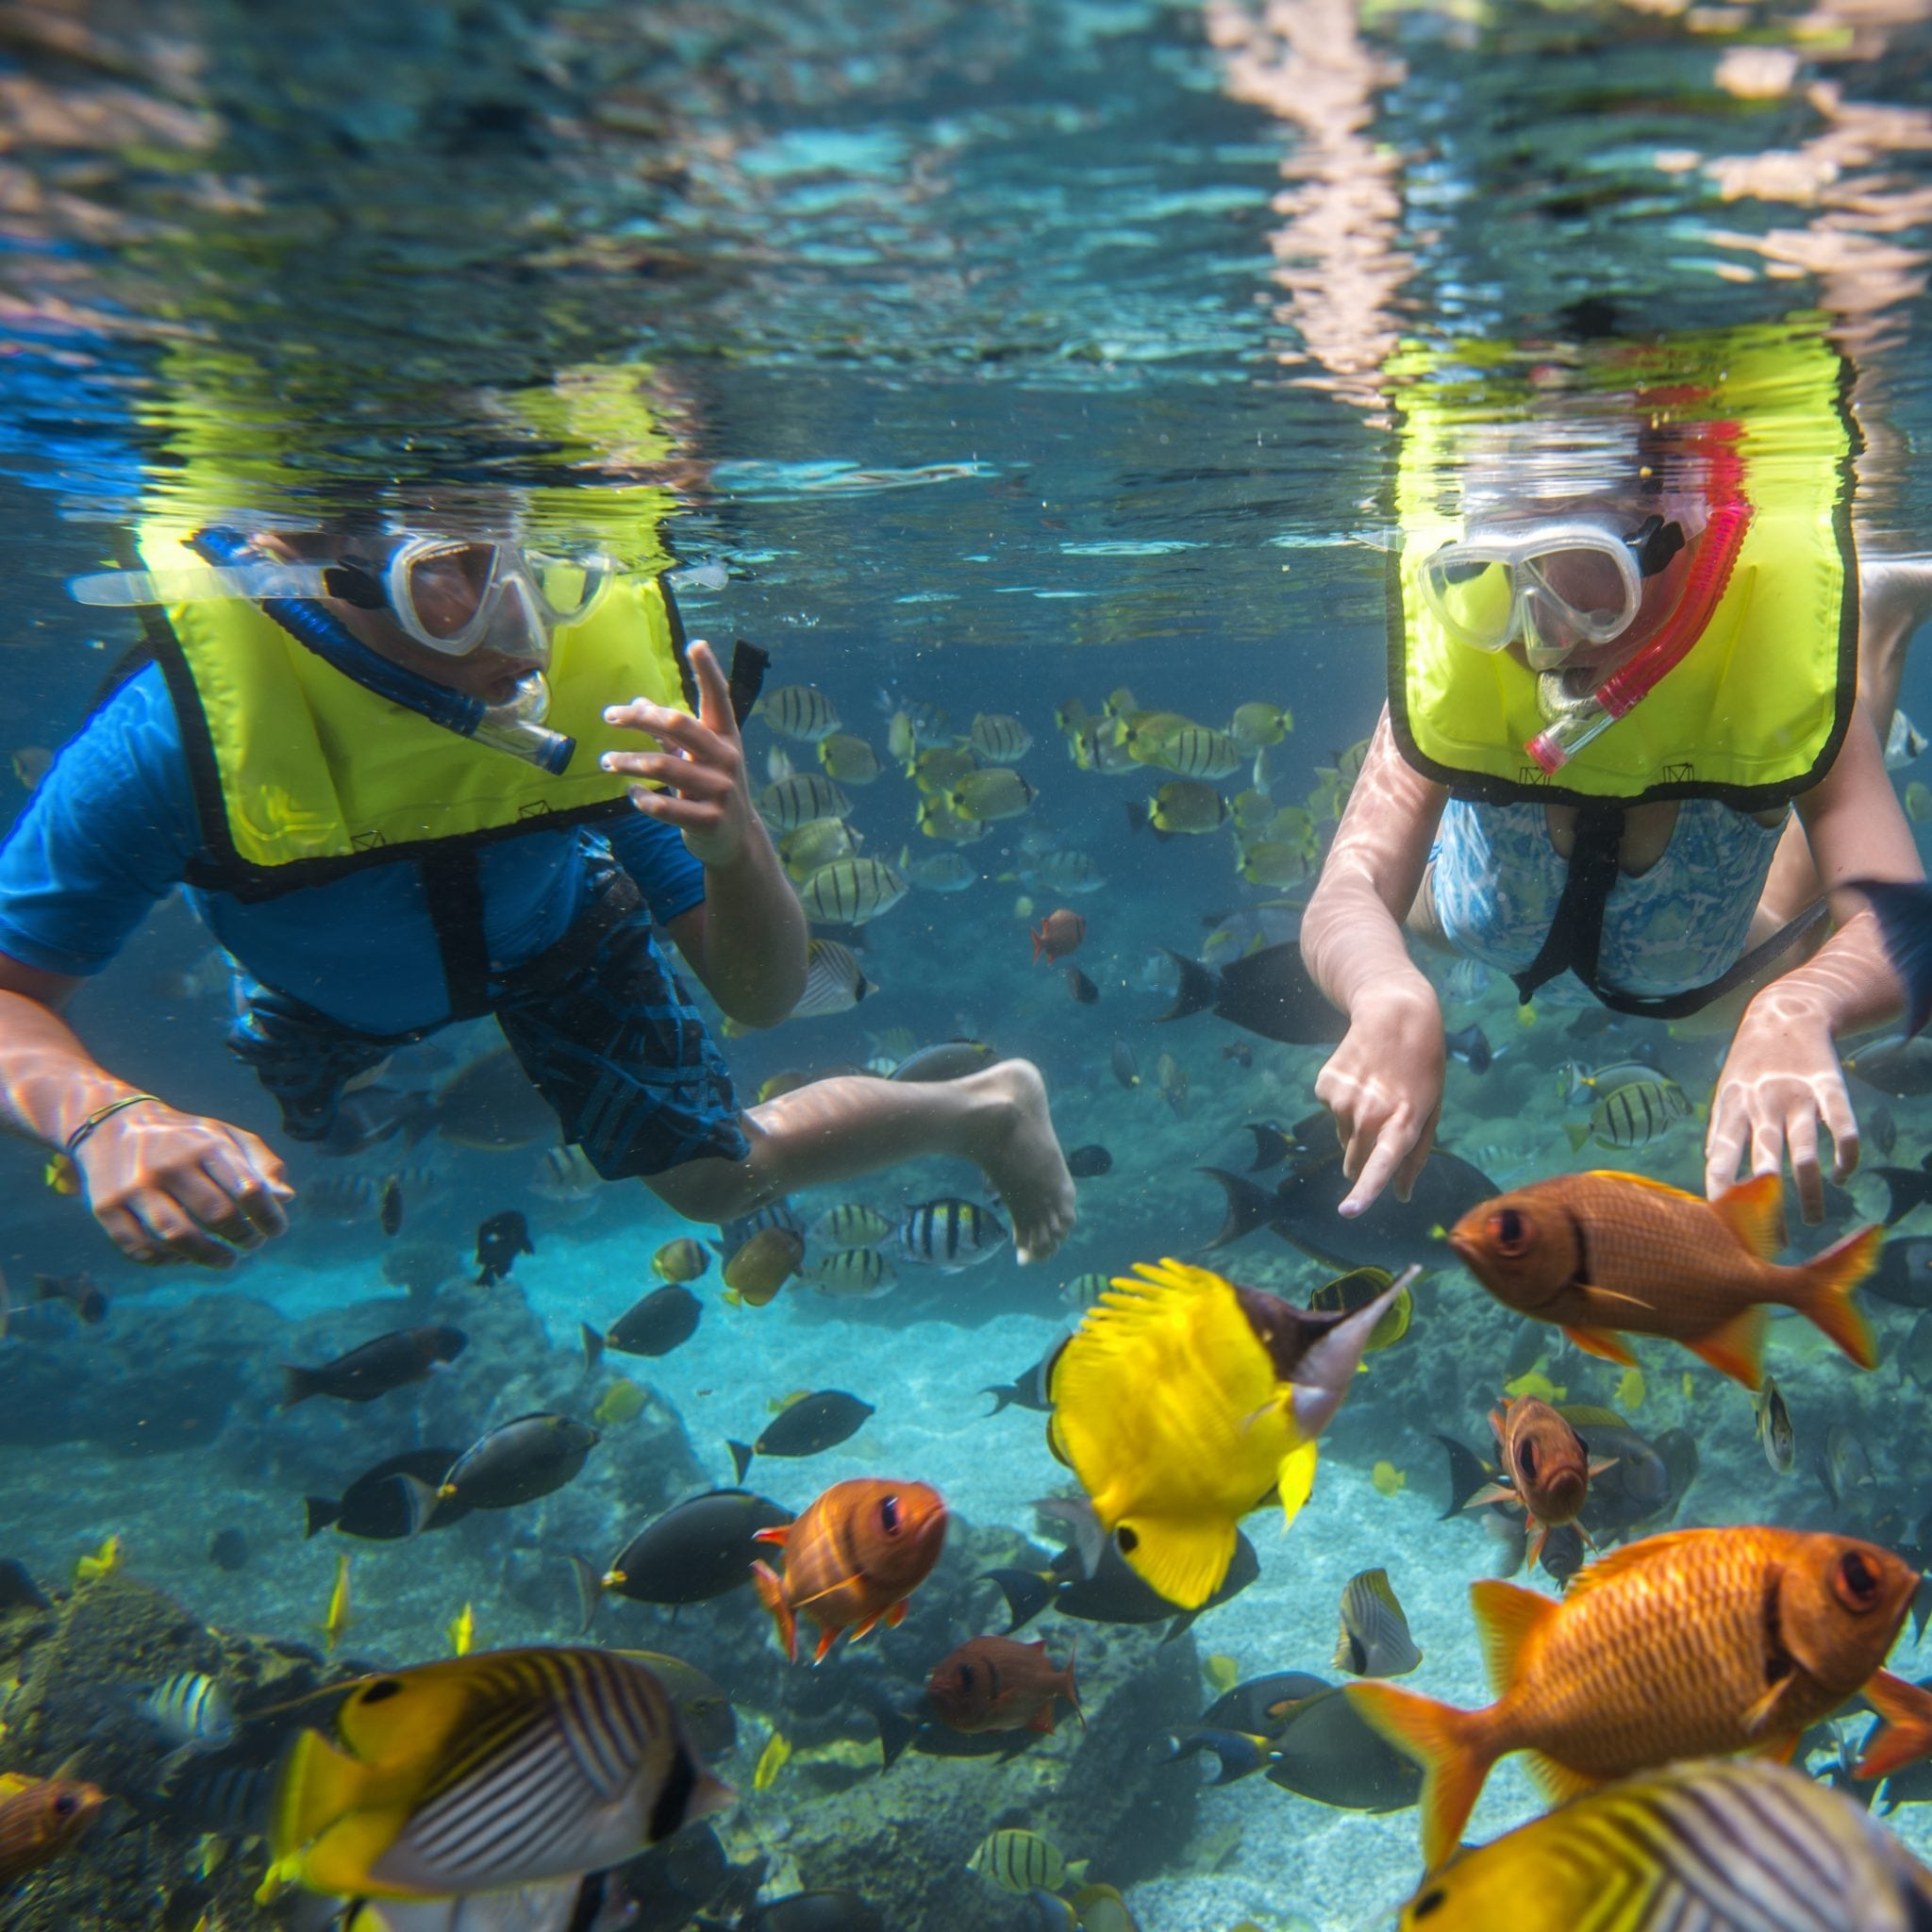 cad857cdf27 A Plunge Into Culture at Disney s Aulani Resort